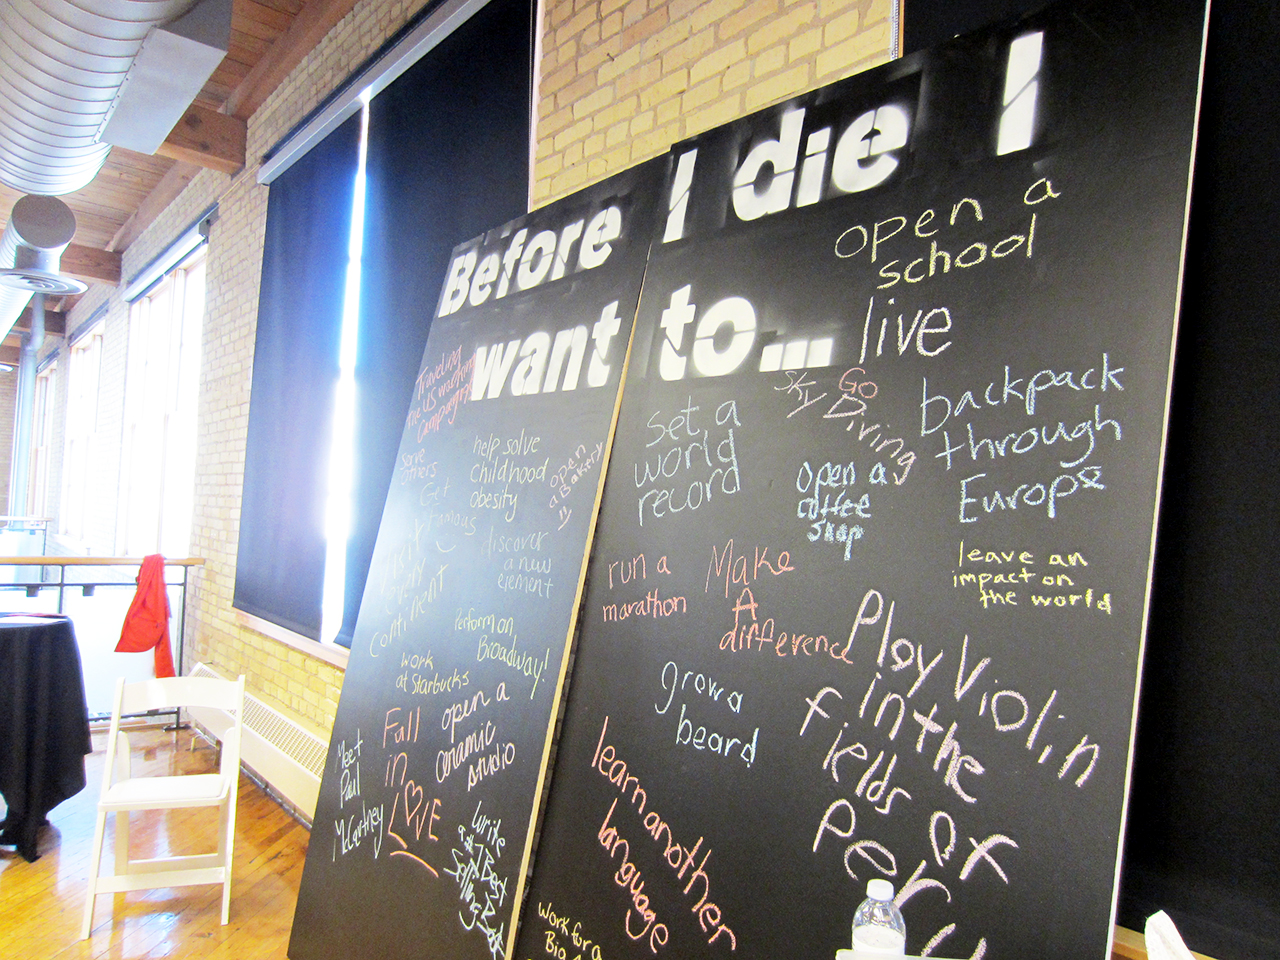 Photo by Jordan Elton. A group of Concordia students helped plan the TEDx Youth event which took place on Nov. 18. The chalkboard above encouraged participants to think about the ways they want to live their life.